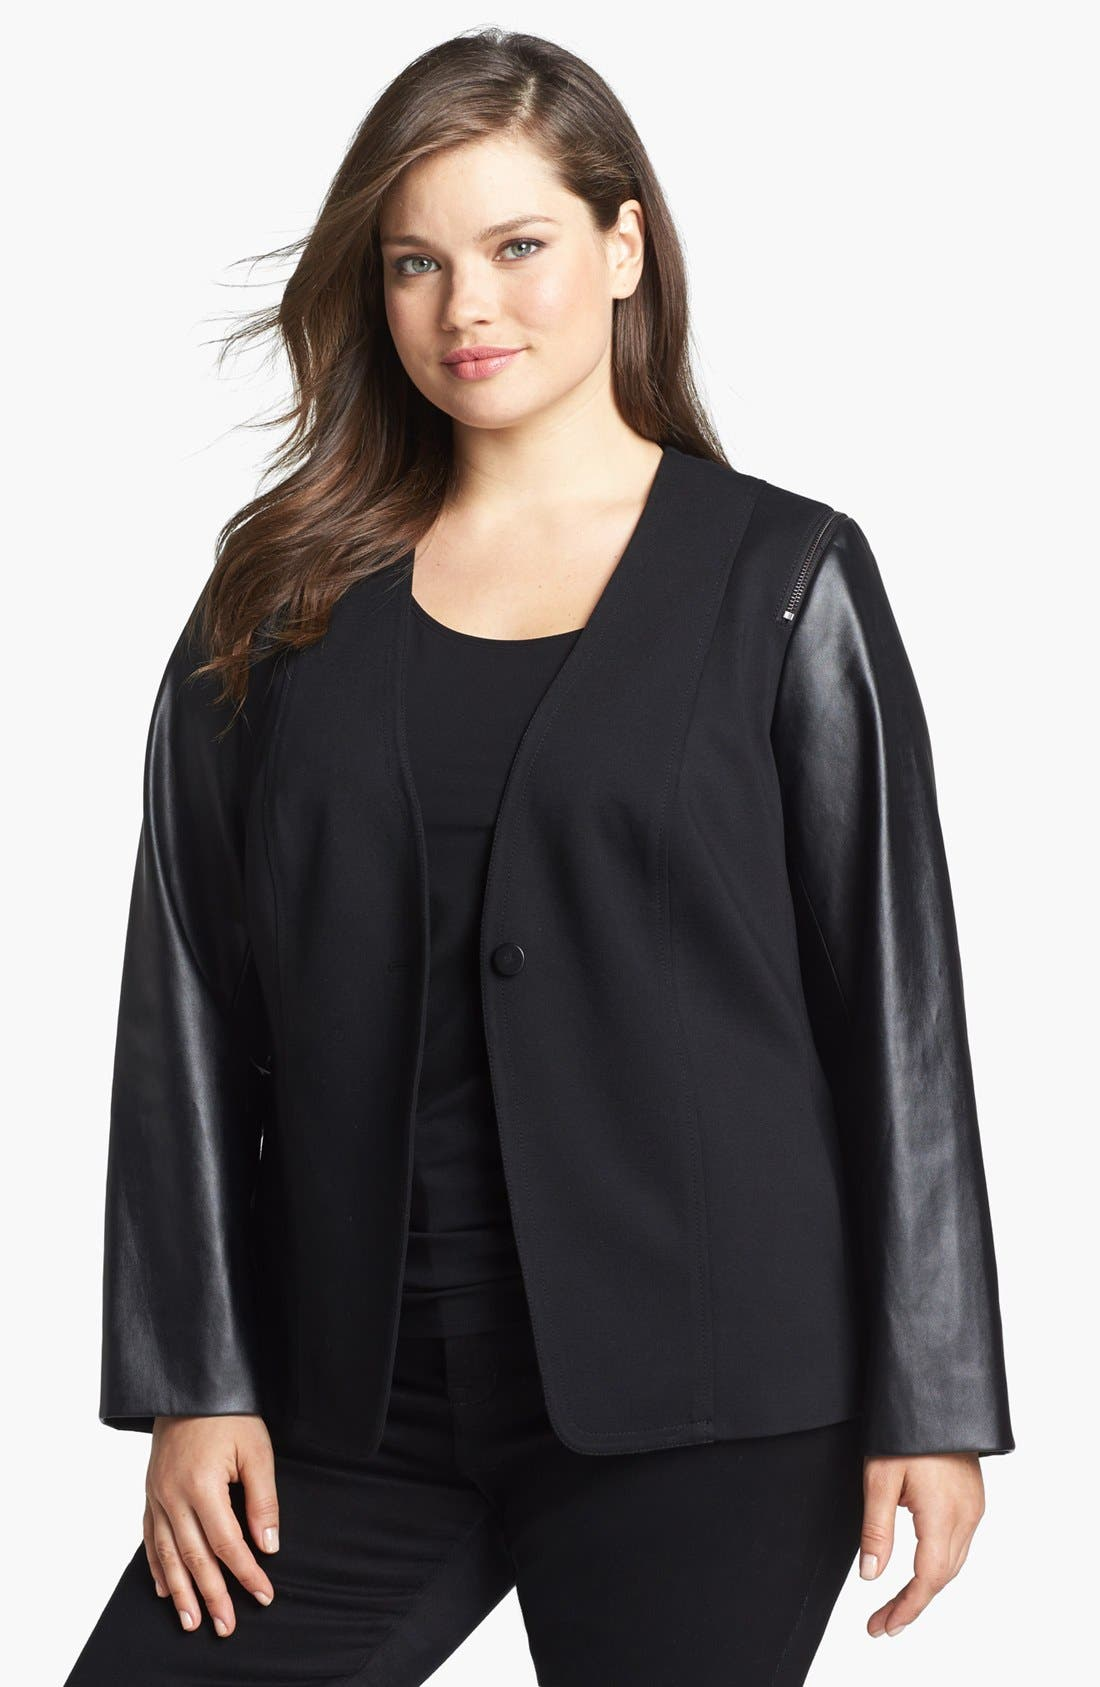 Main Image - Vince Camuto Faux Leather & Knit Jacket (Plus Size)